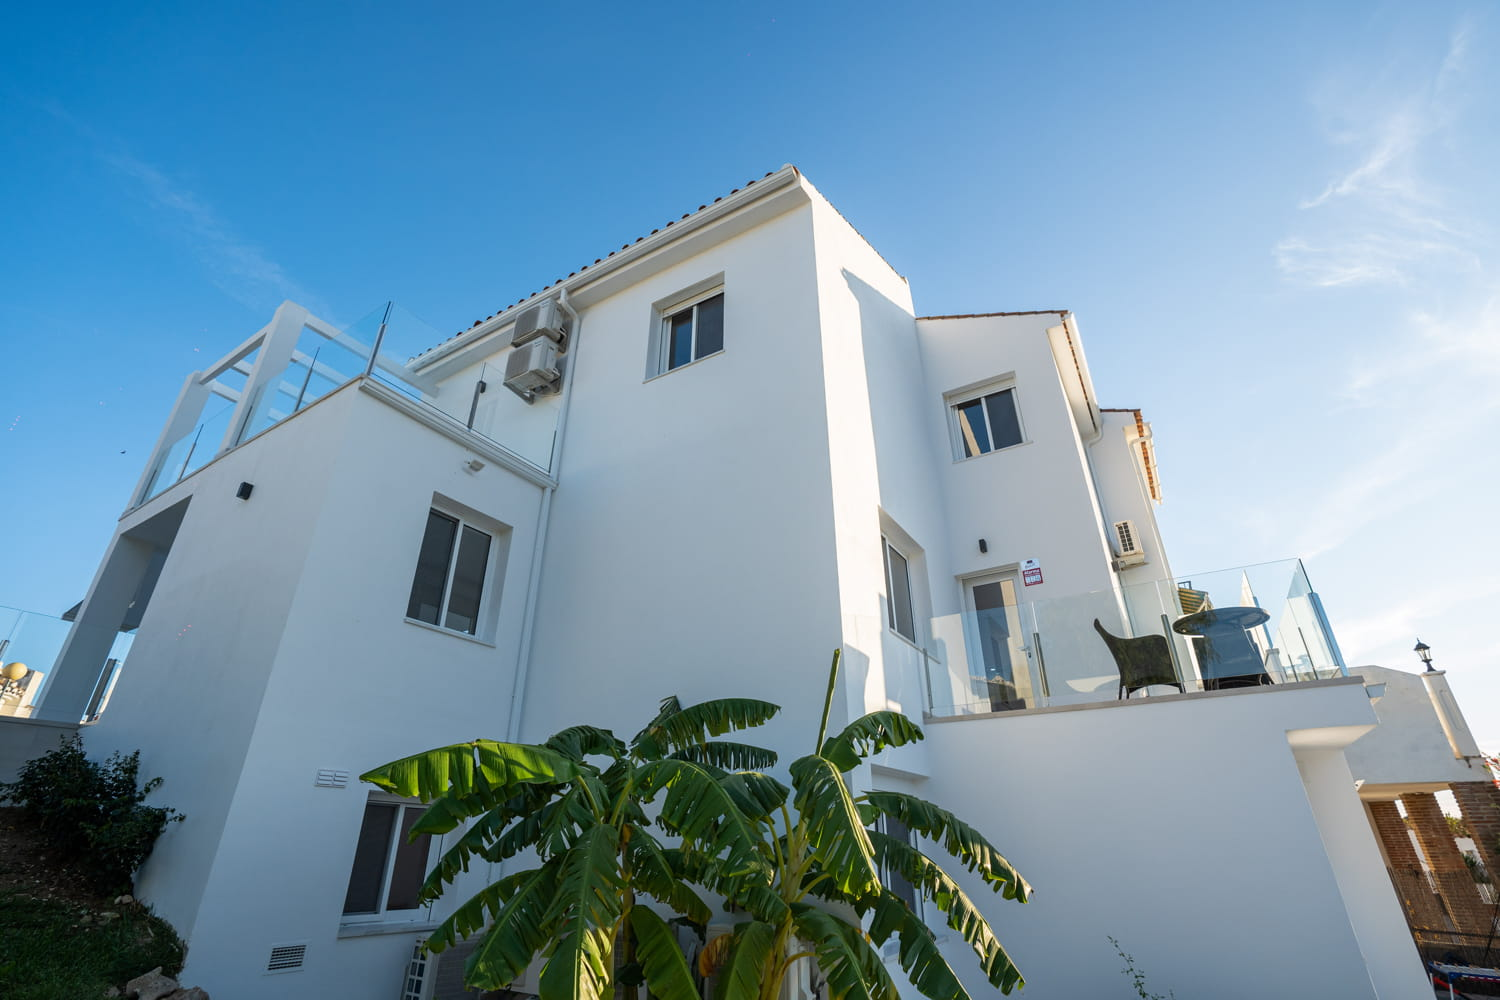 reforma integral villa mijas costa u projects (29)